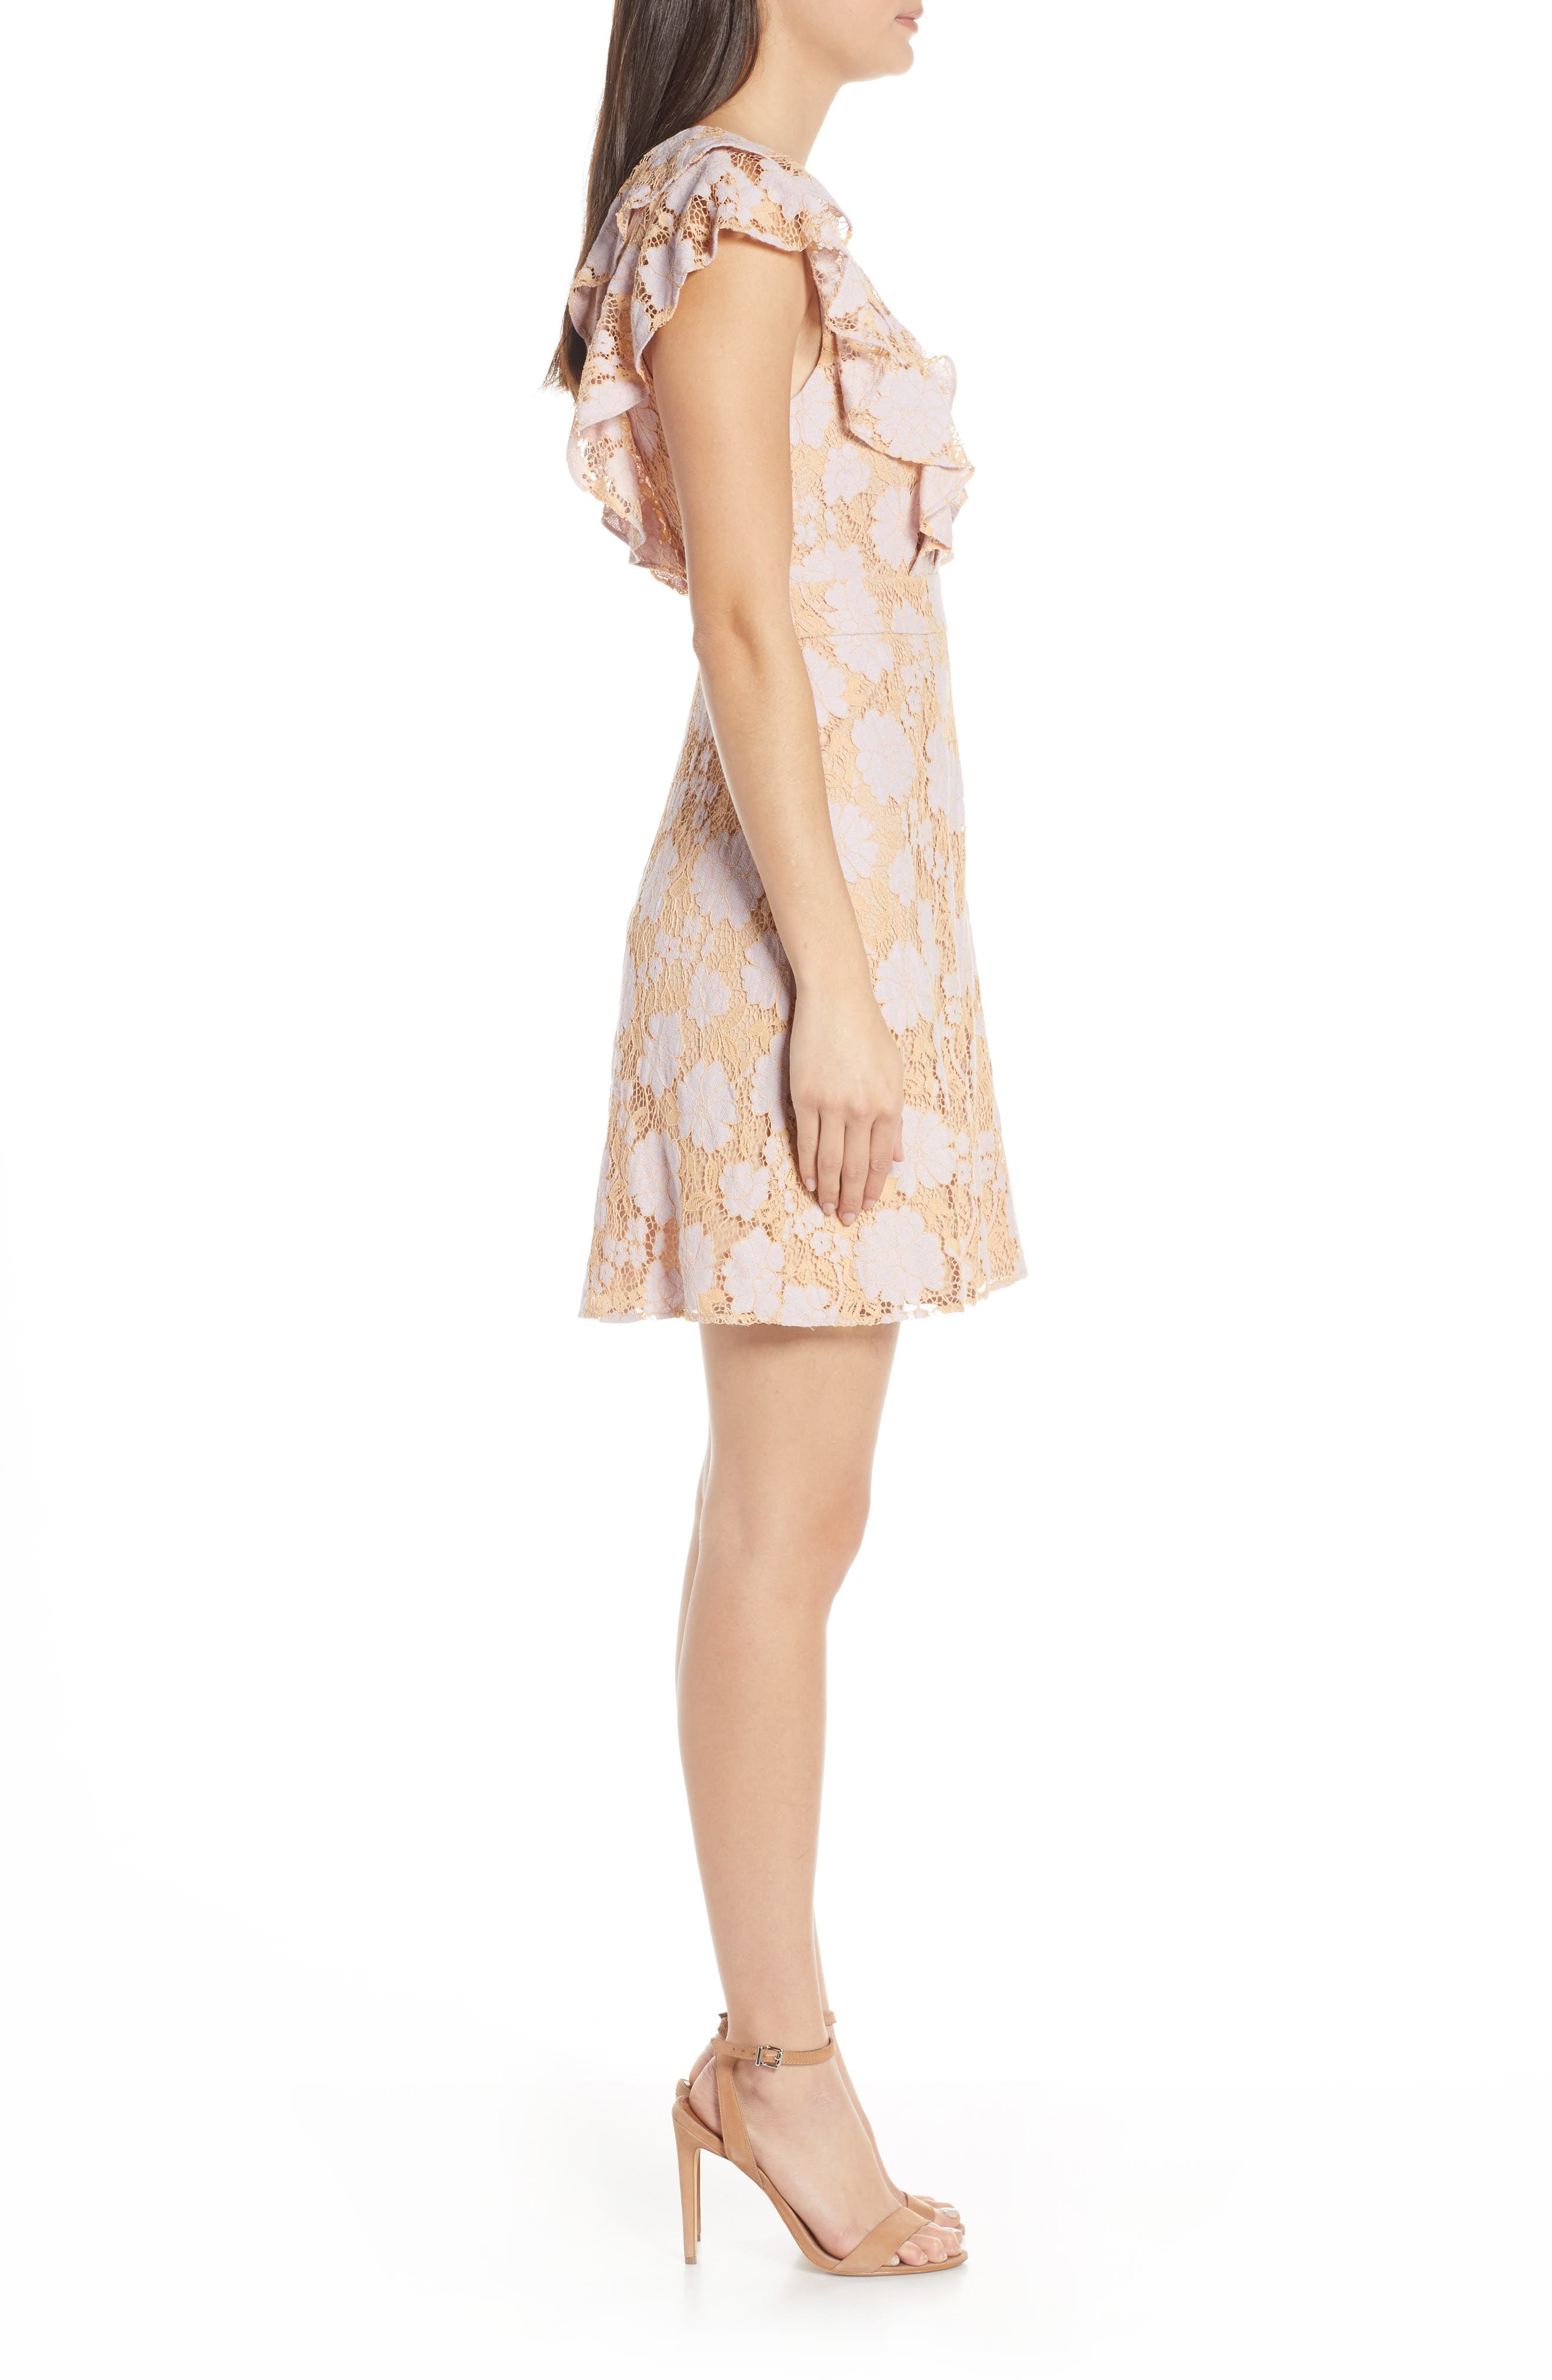 CHARLES HENRY, Ruffle Lace Minidress, Alternate thumbnail 4, color, LILAC-PINK LACE